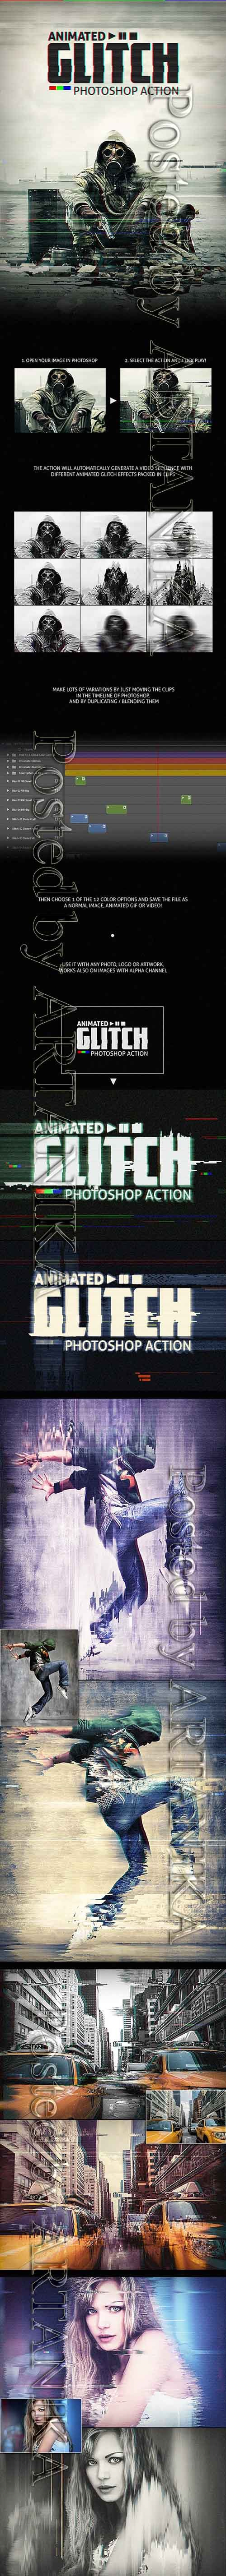 GR - Animated Glitch - Photoshop Action 12119186